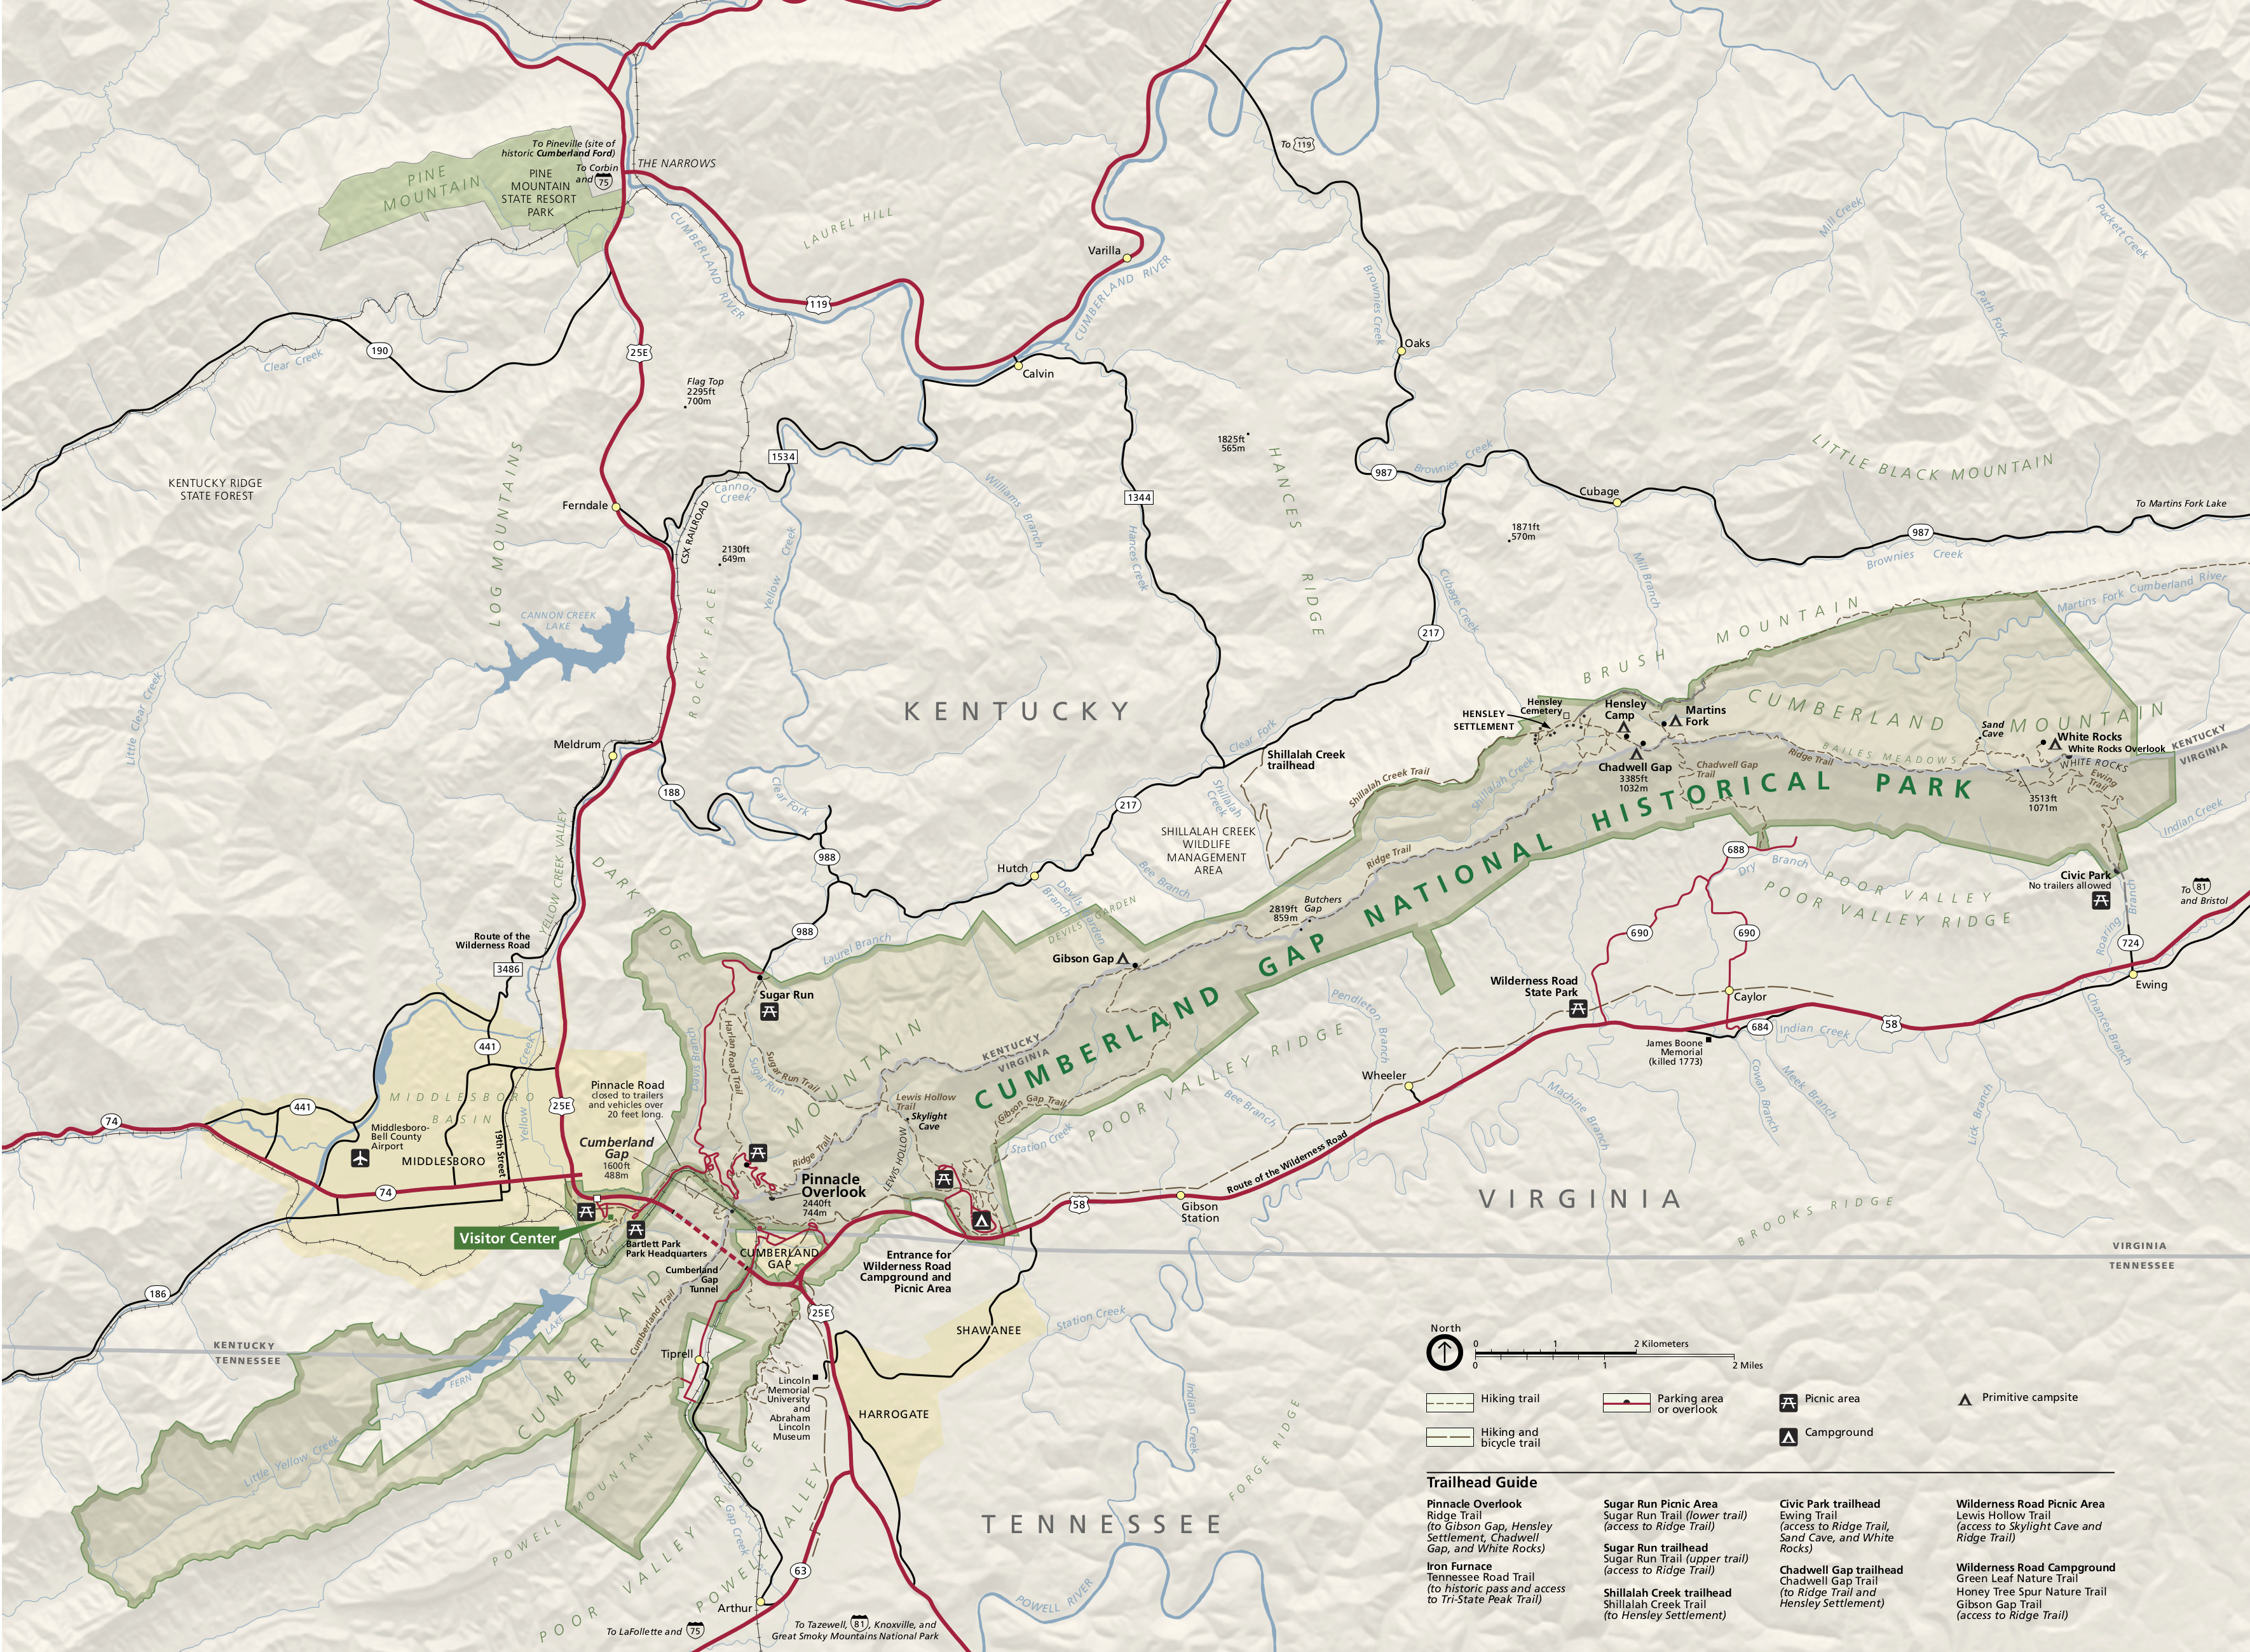 berland Gap Maps | NPMaps.com - just free maps, period. on map of swamps, map of yukon, map of bristol, map of correlations, map of carpet, map of betsy ross,